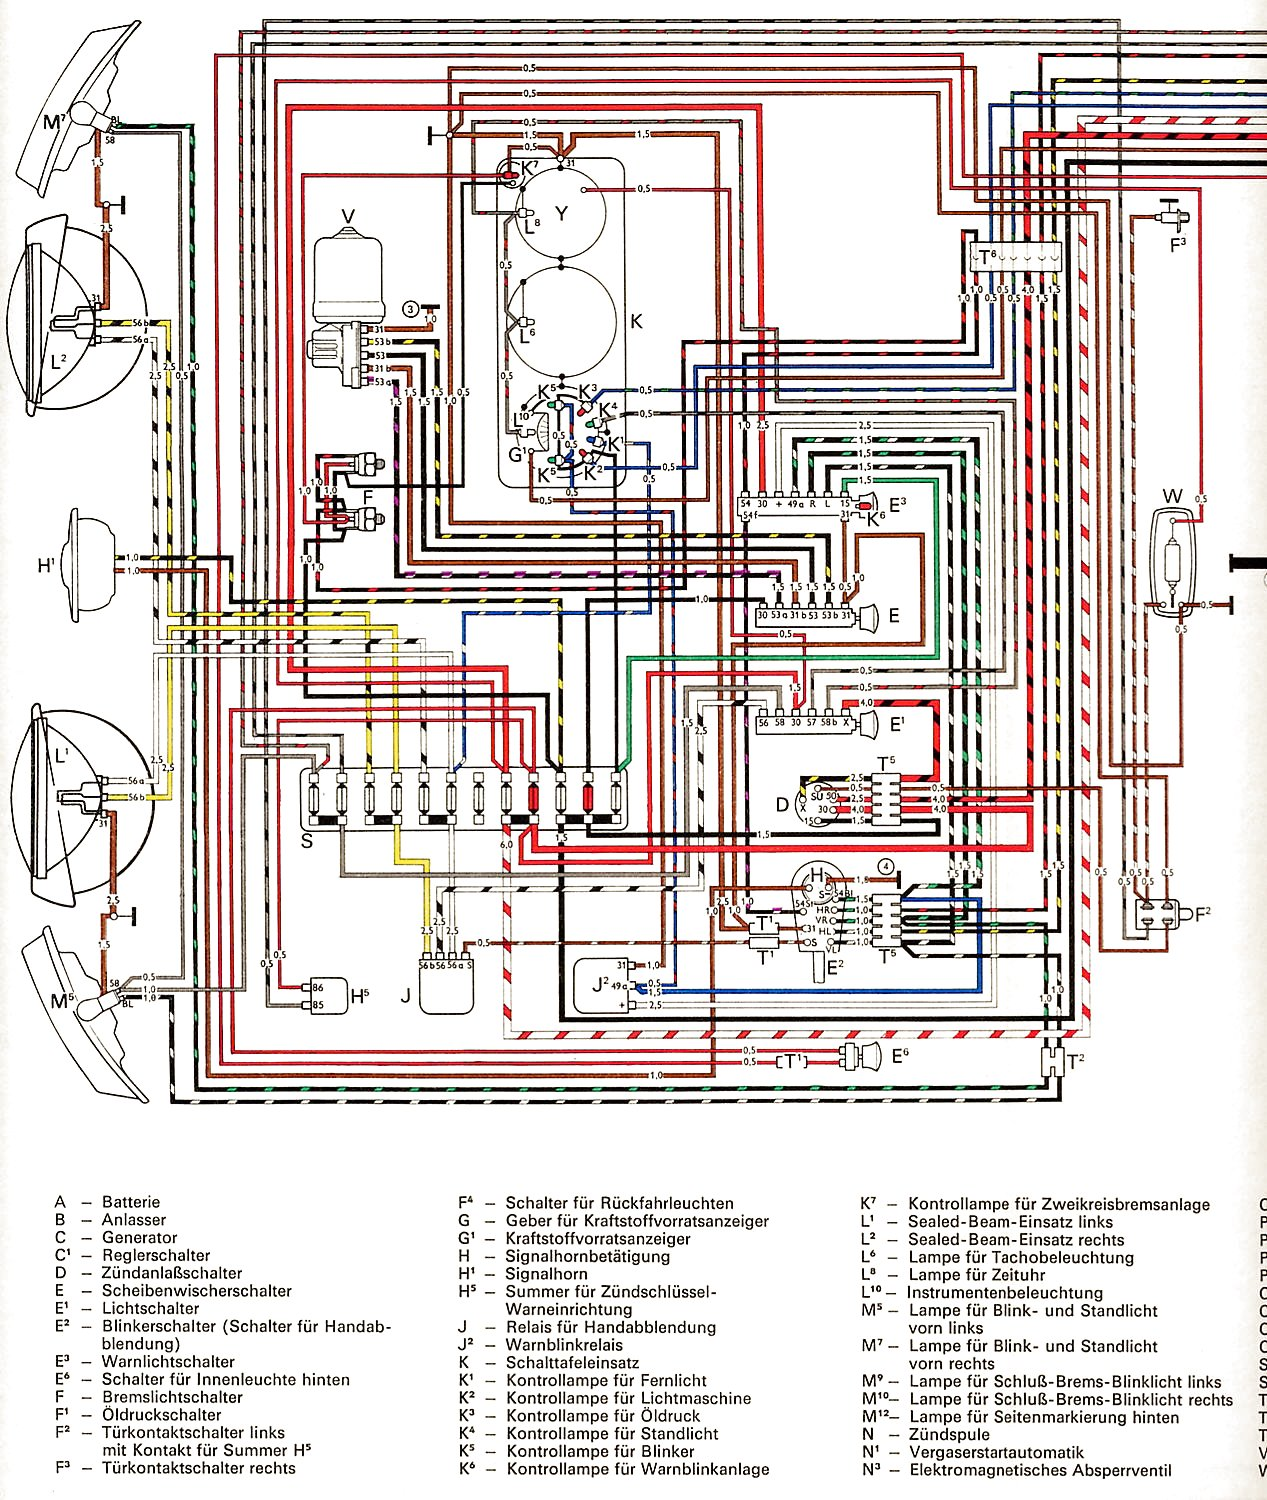 Transporter_USA_from_August_1970 1 vw beetle wiring diagram 1974 1973 vw beetle wiring diagram new beetle wiring diagram at bayanpartner.co